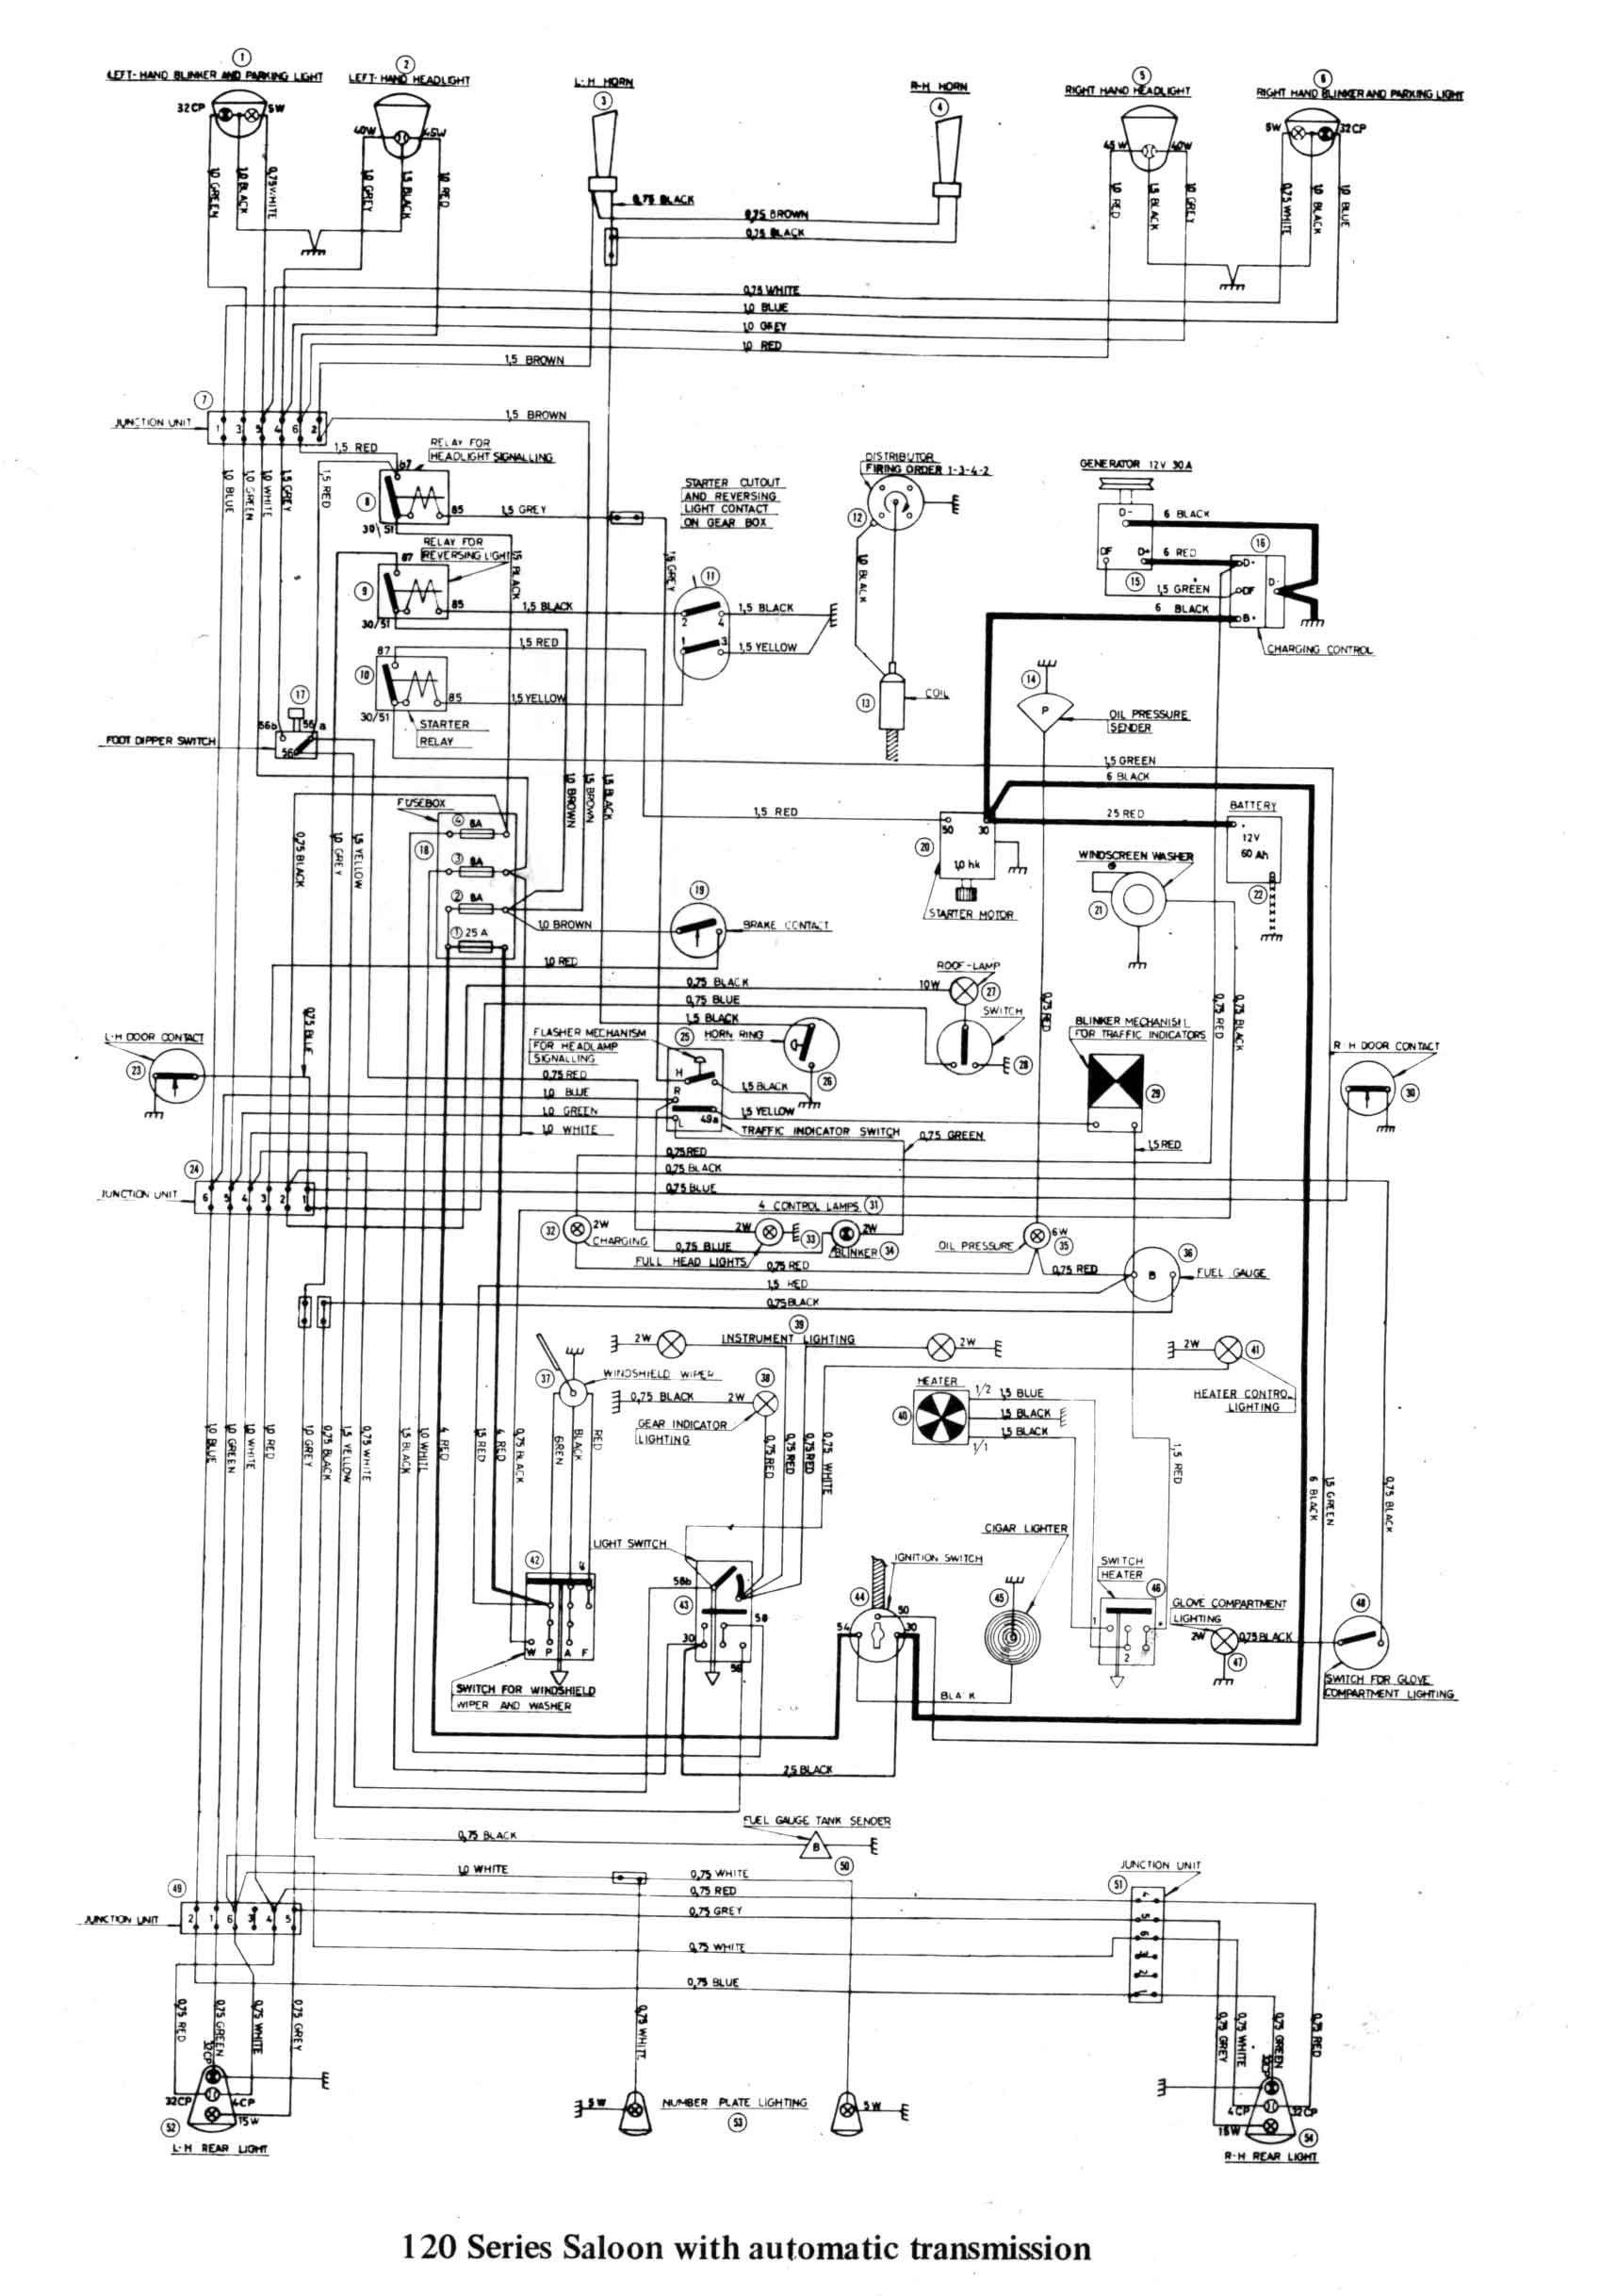 91 Volvo 740 Fuse Box Diagram - Wiring Diagram Networks | 2007 Volvo Truck Fuse Panel Diagram Wiring Schematic |  | Wiring Diagram Networks - blogger